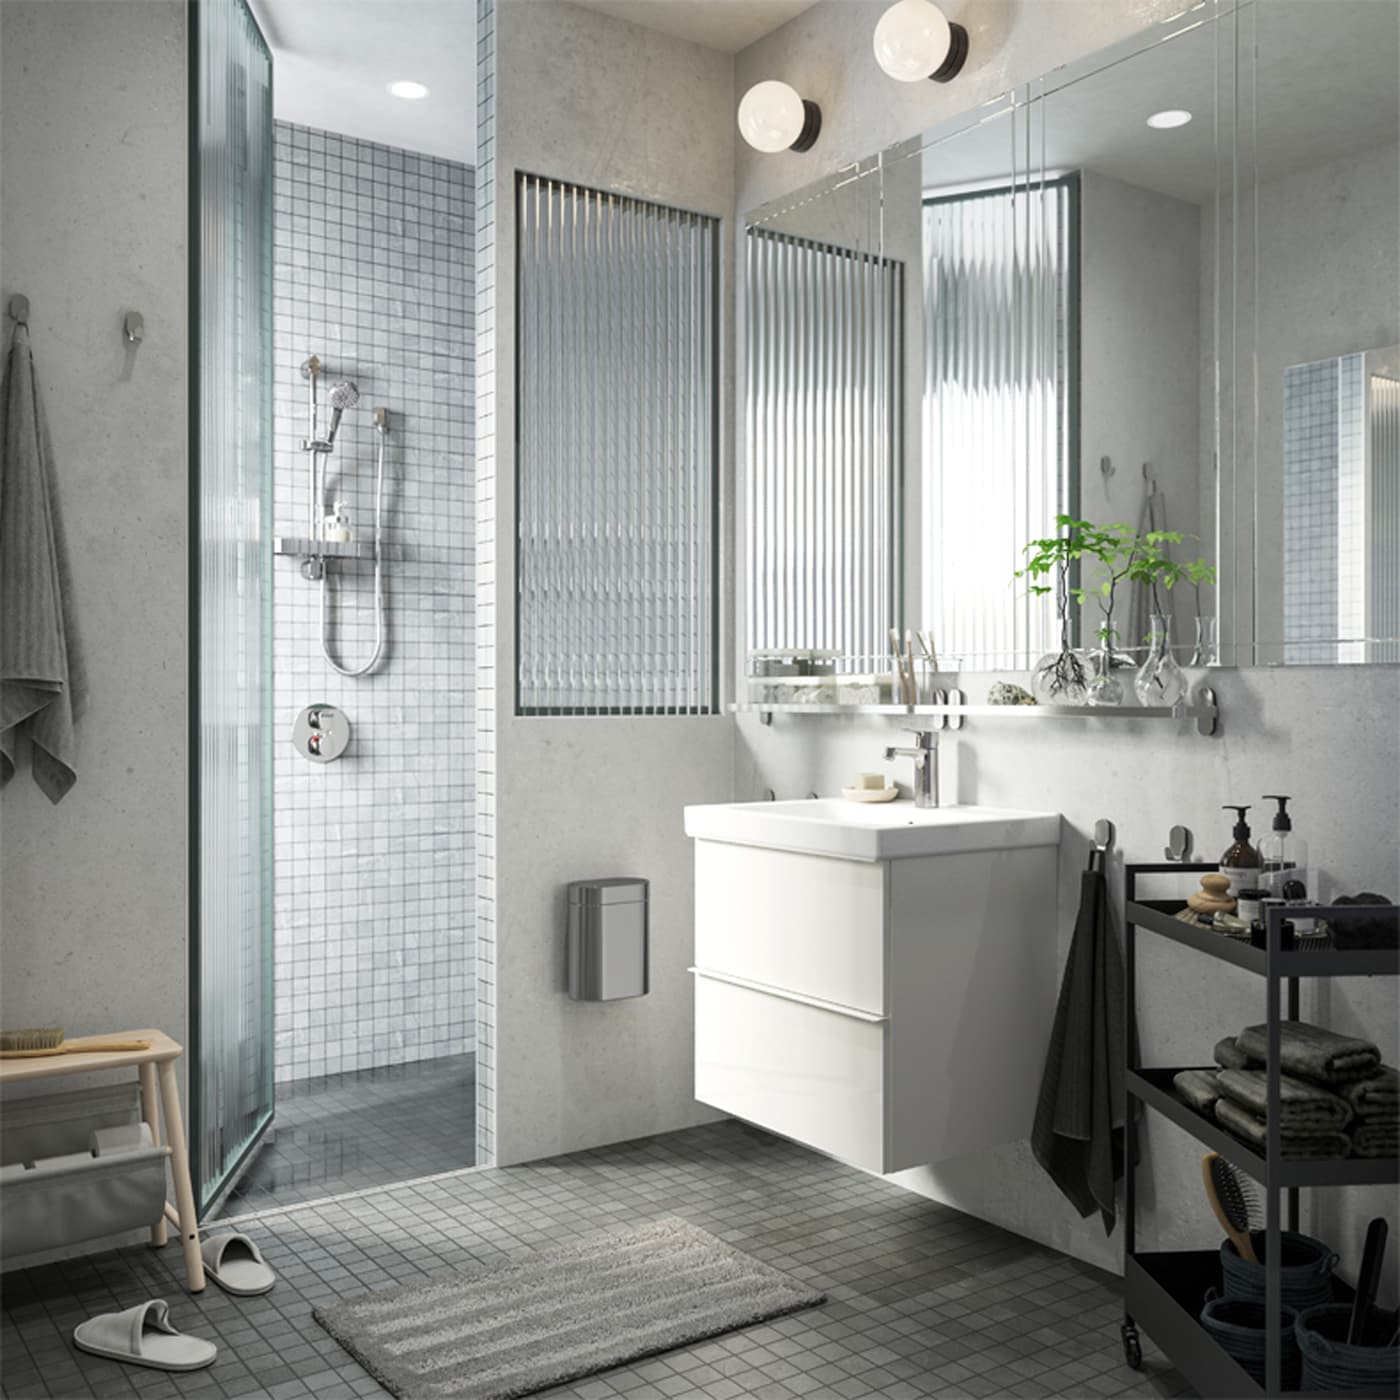 A white and grey bathroom with a shower, a white wash basin and a black trolley that stores towels, soaps and more.